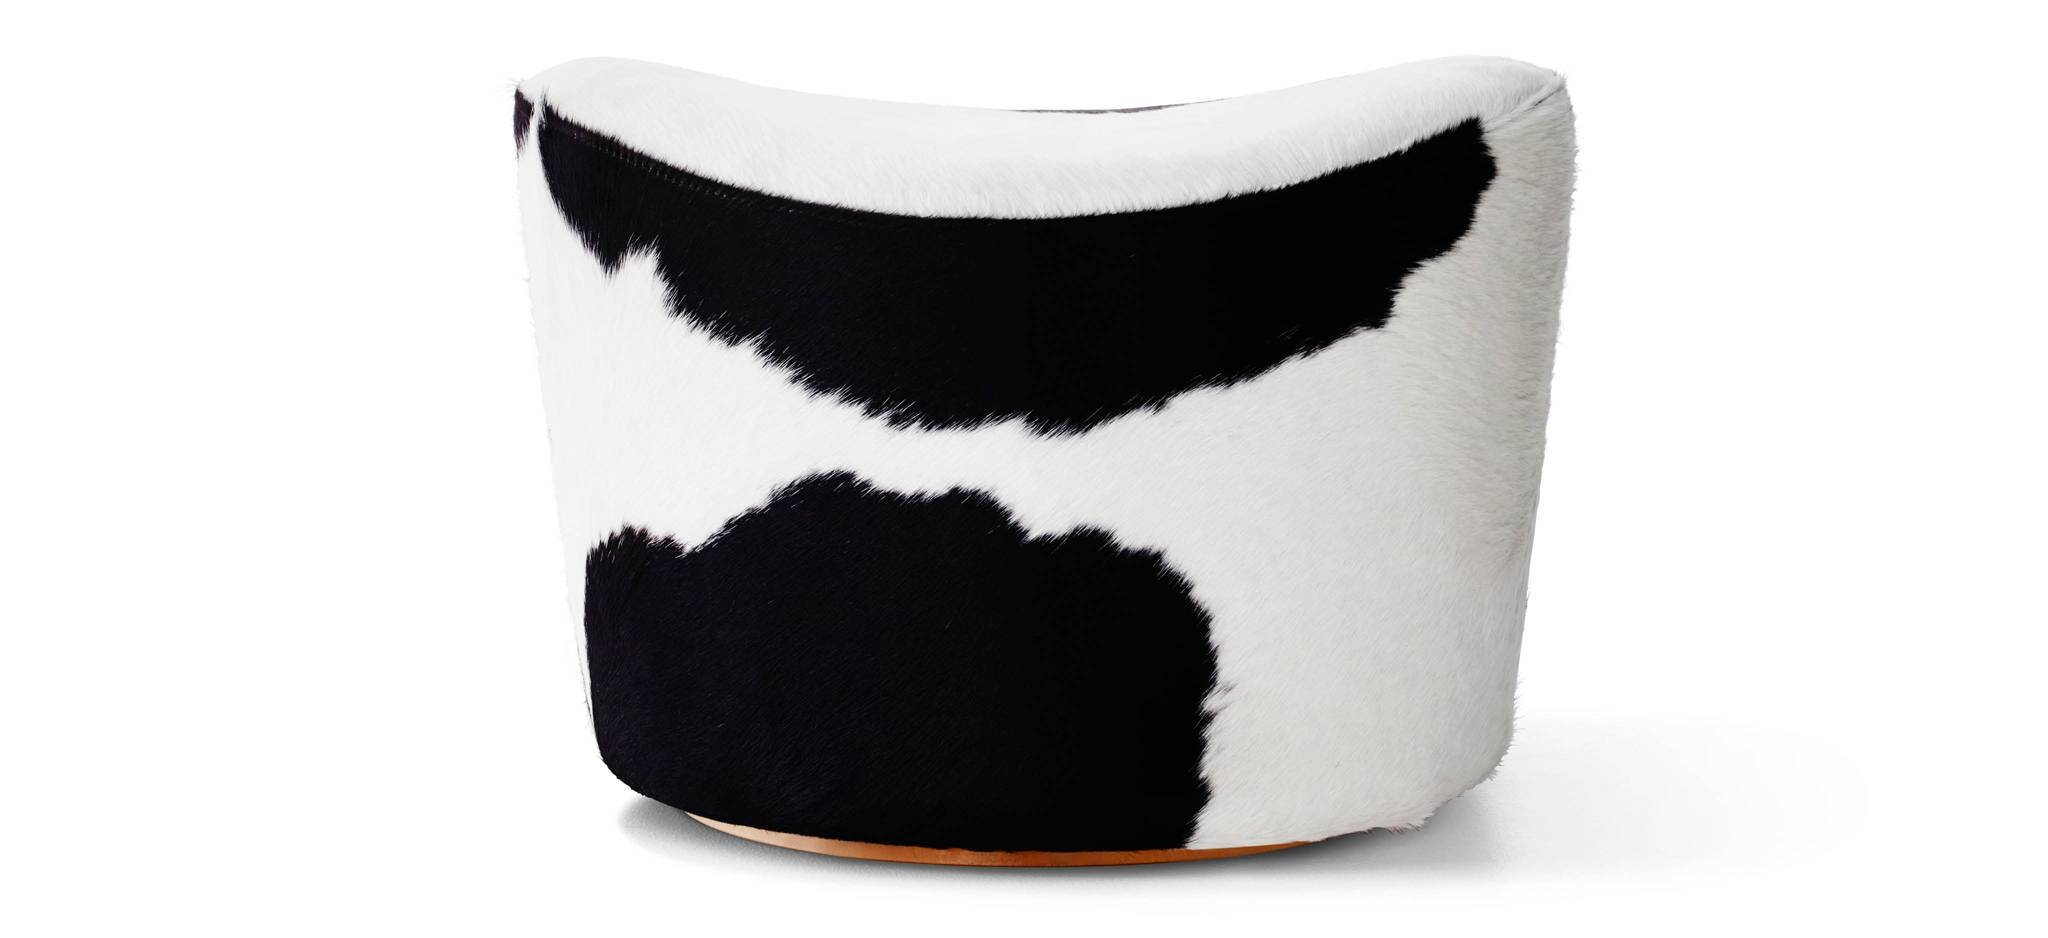 Footstools And Pouffes | Shop At Ikea Ireland throughout Footstools And Pouffes (Image 9 of 30)